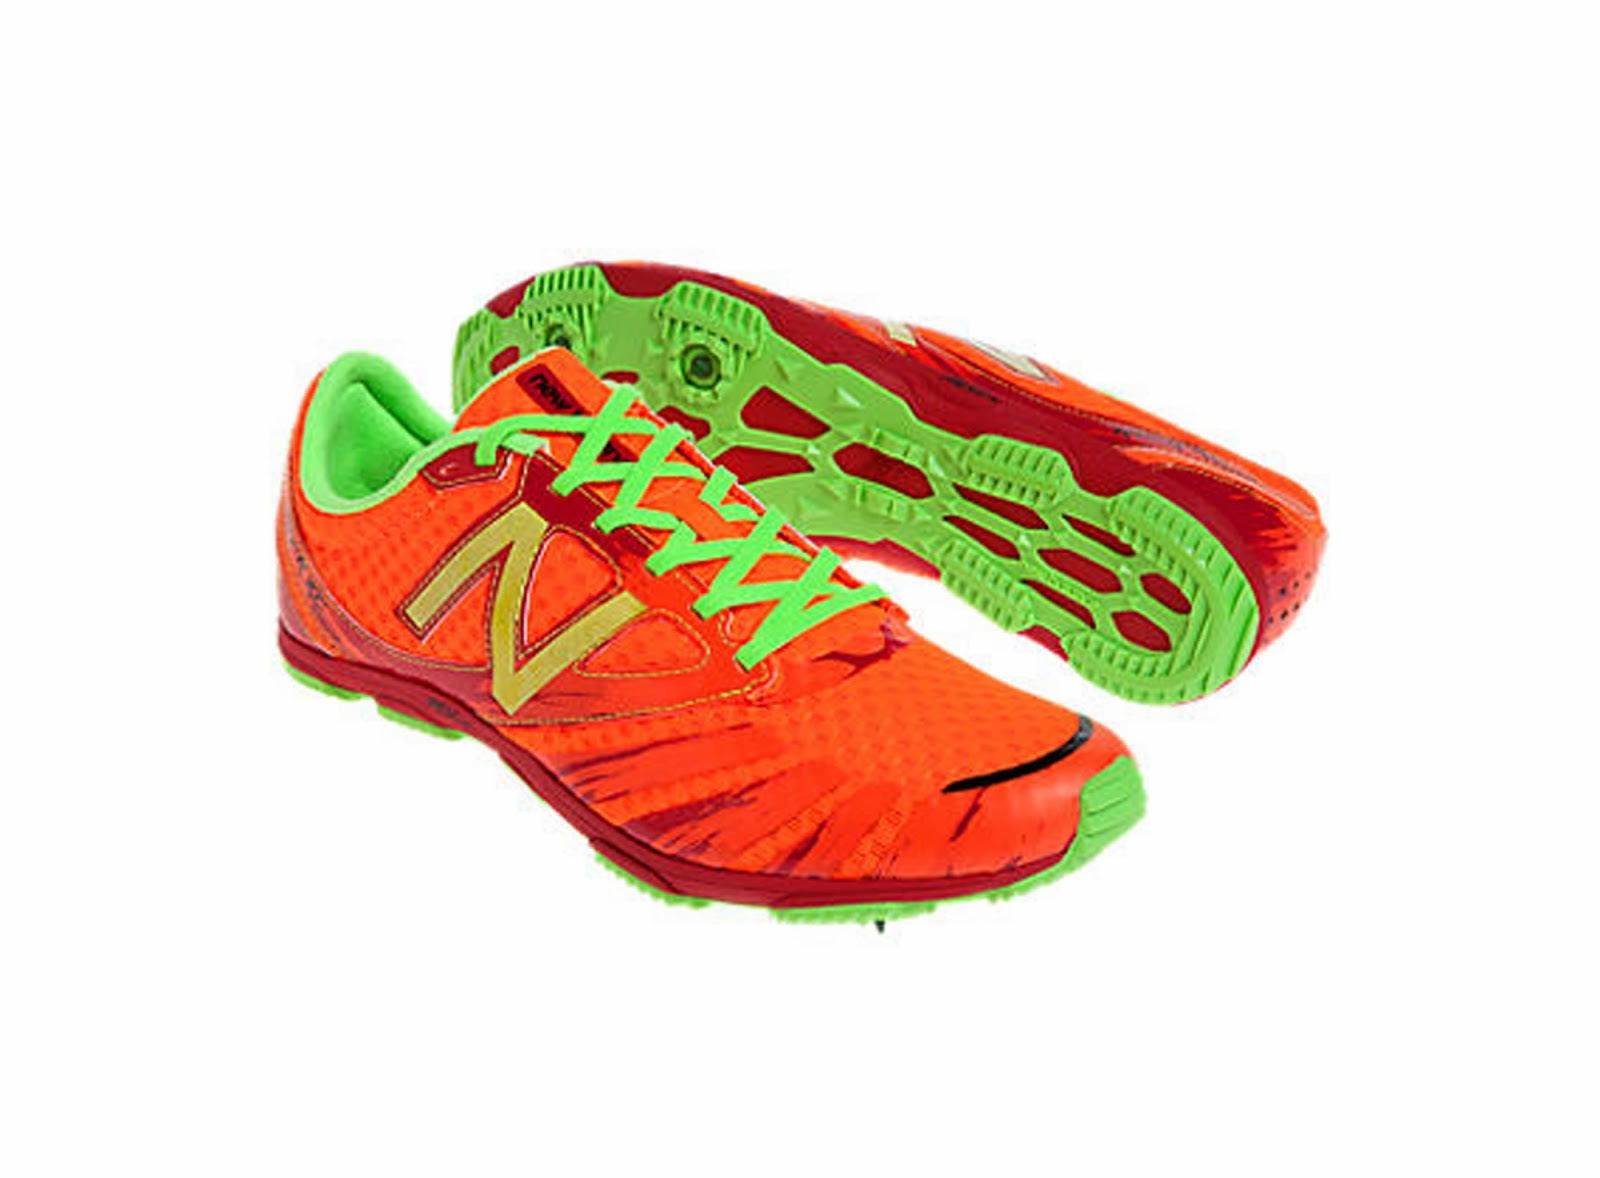 New Balance Spikes Cross Country Cross Country Spikes New